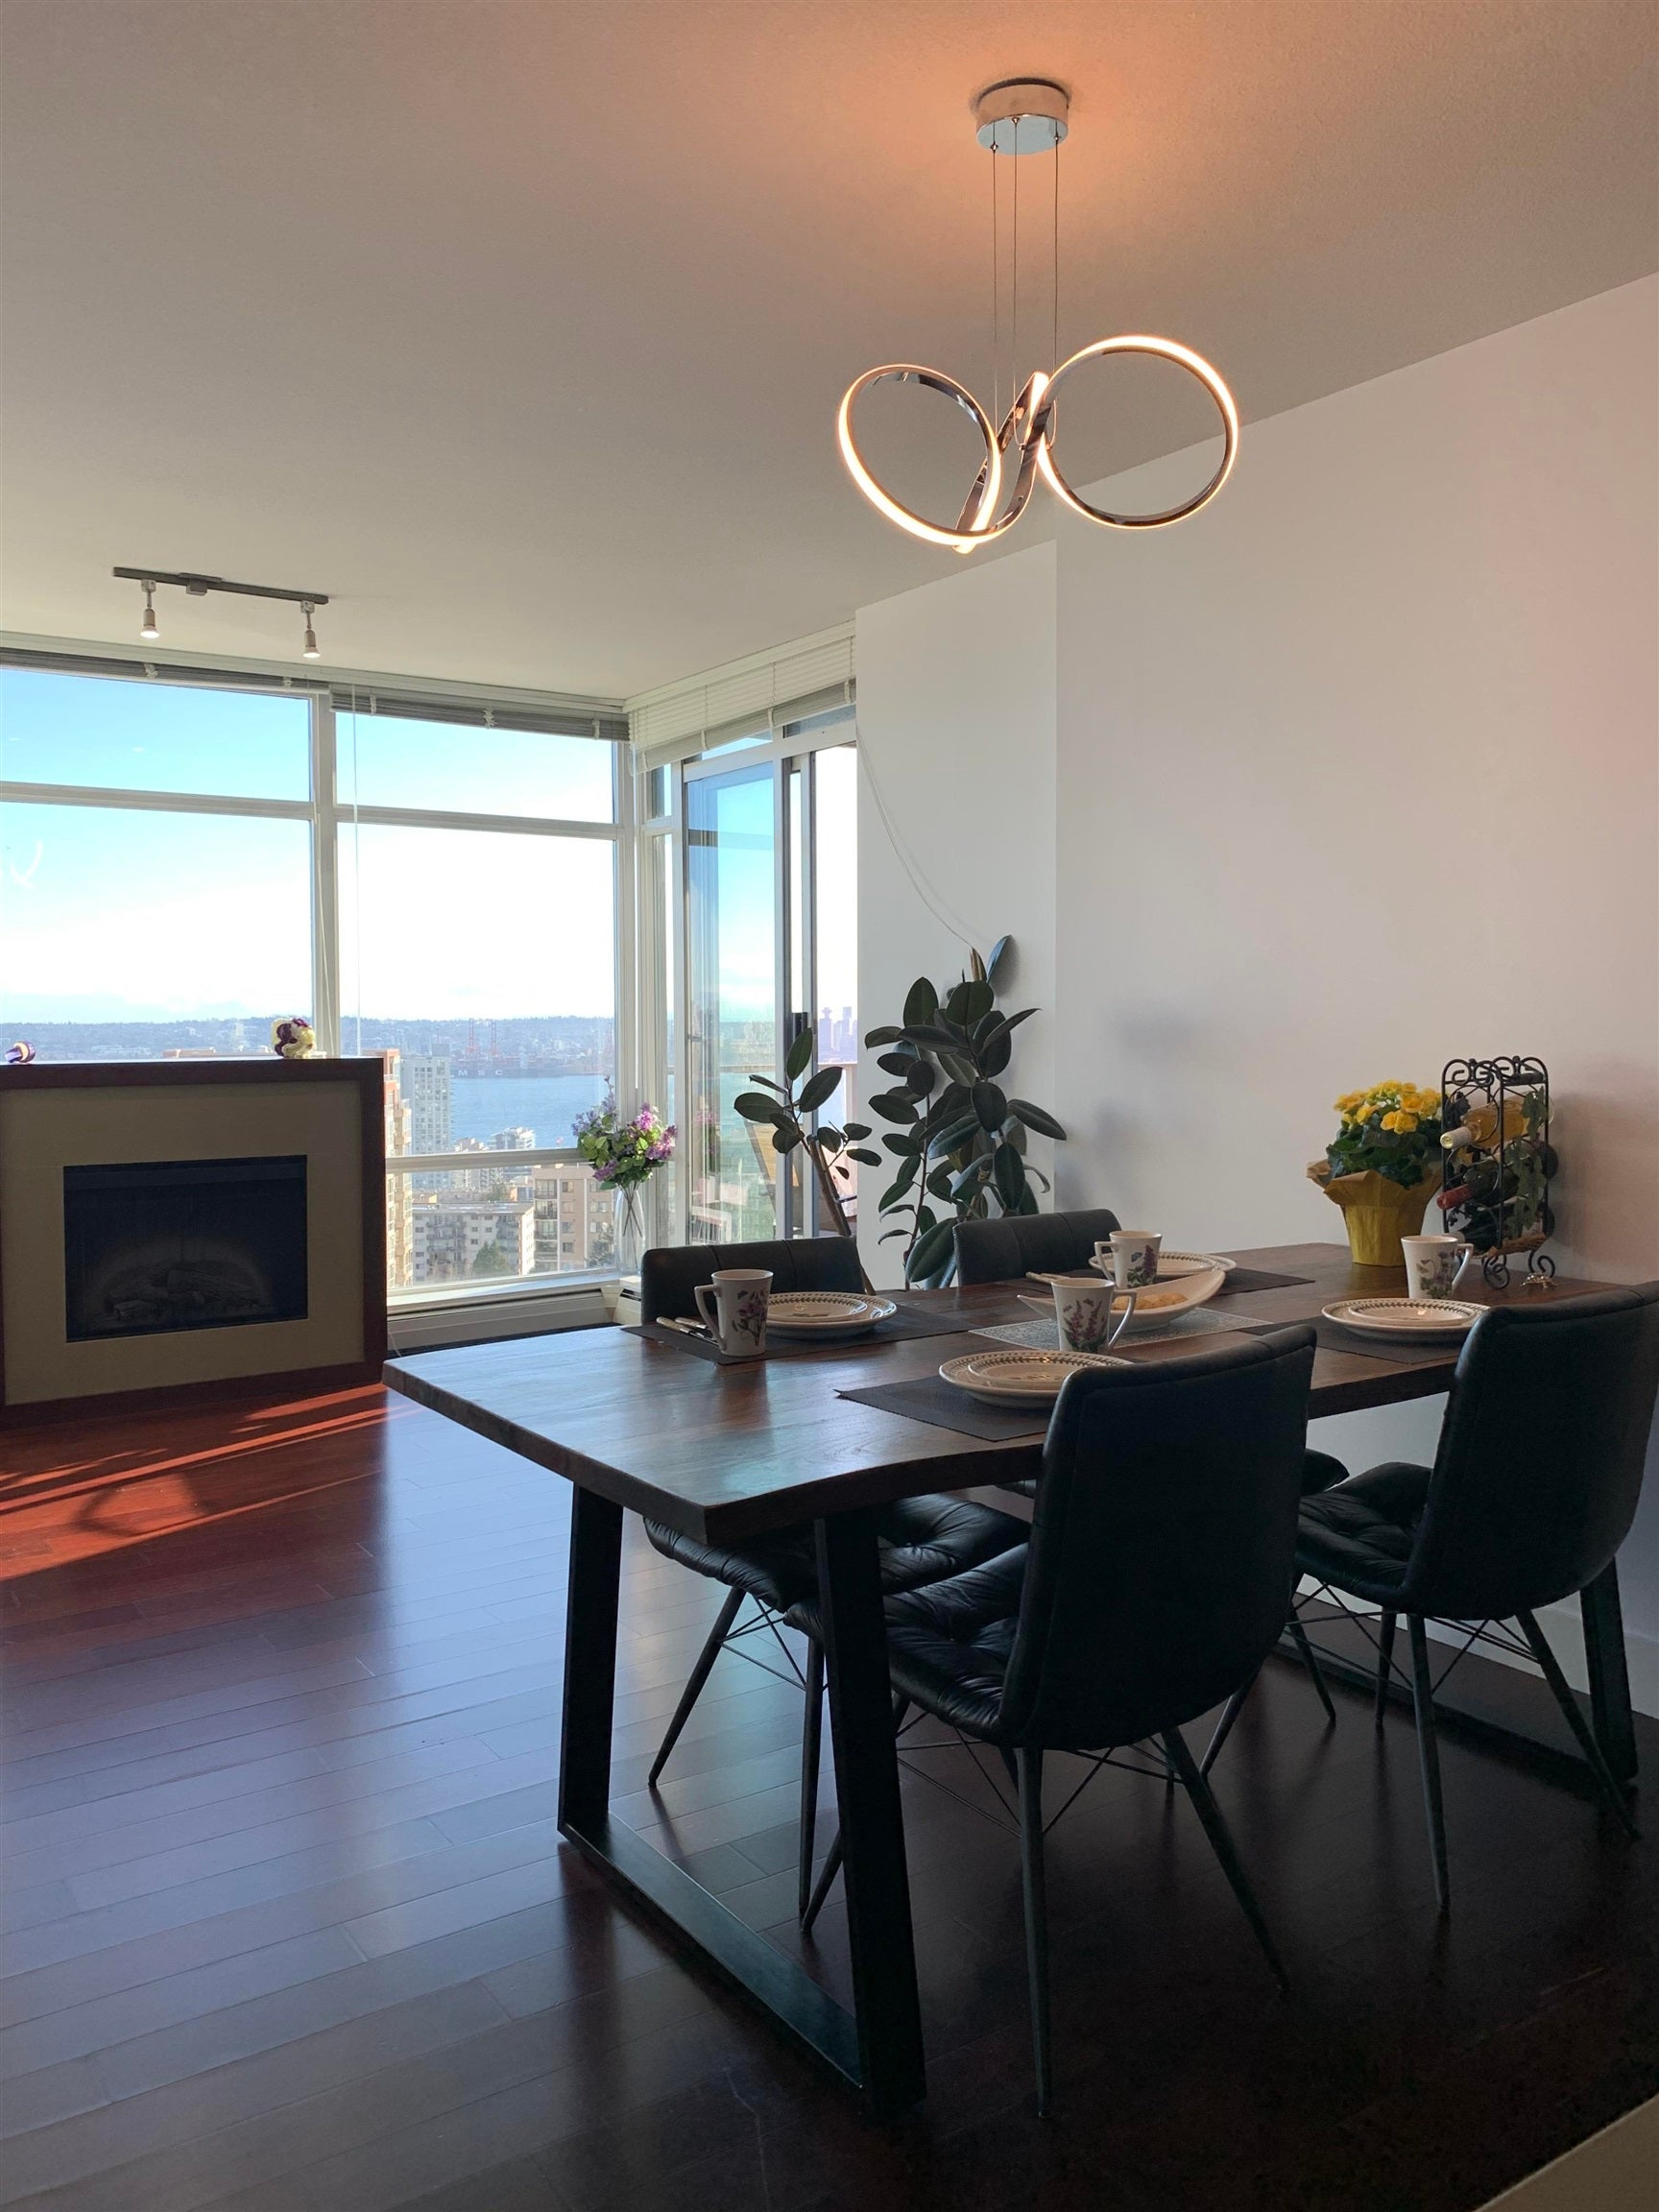 1505 158 W 13TH STREET - Central Lonsdale Apartment/Condo for sale, 2 Bedrooms (R2616868) - #10